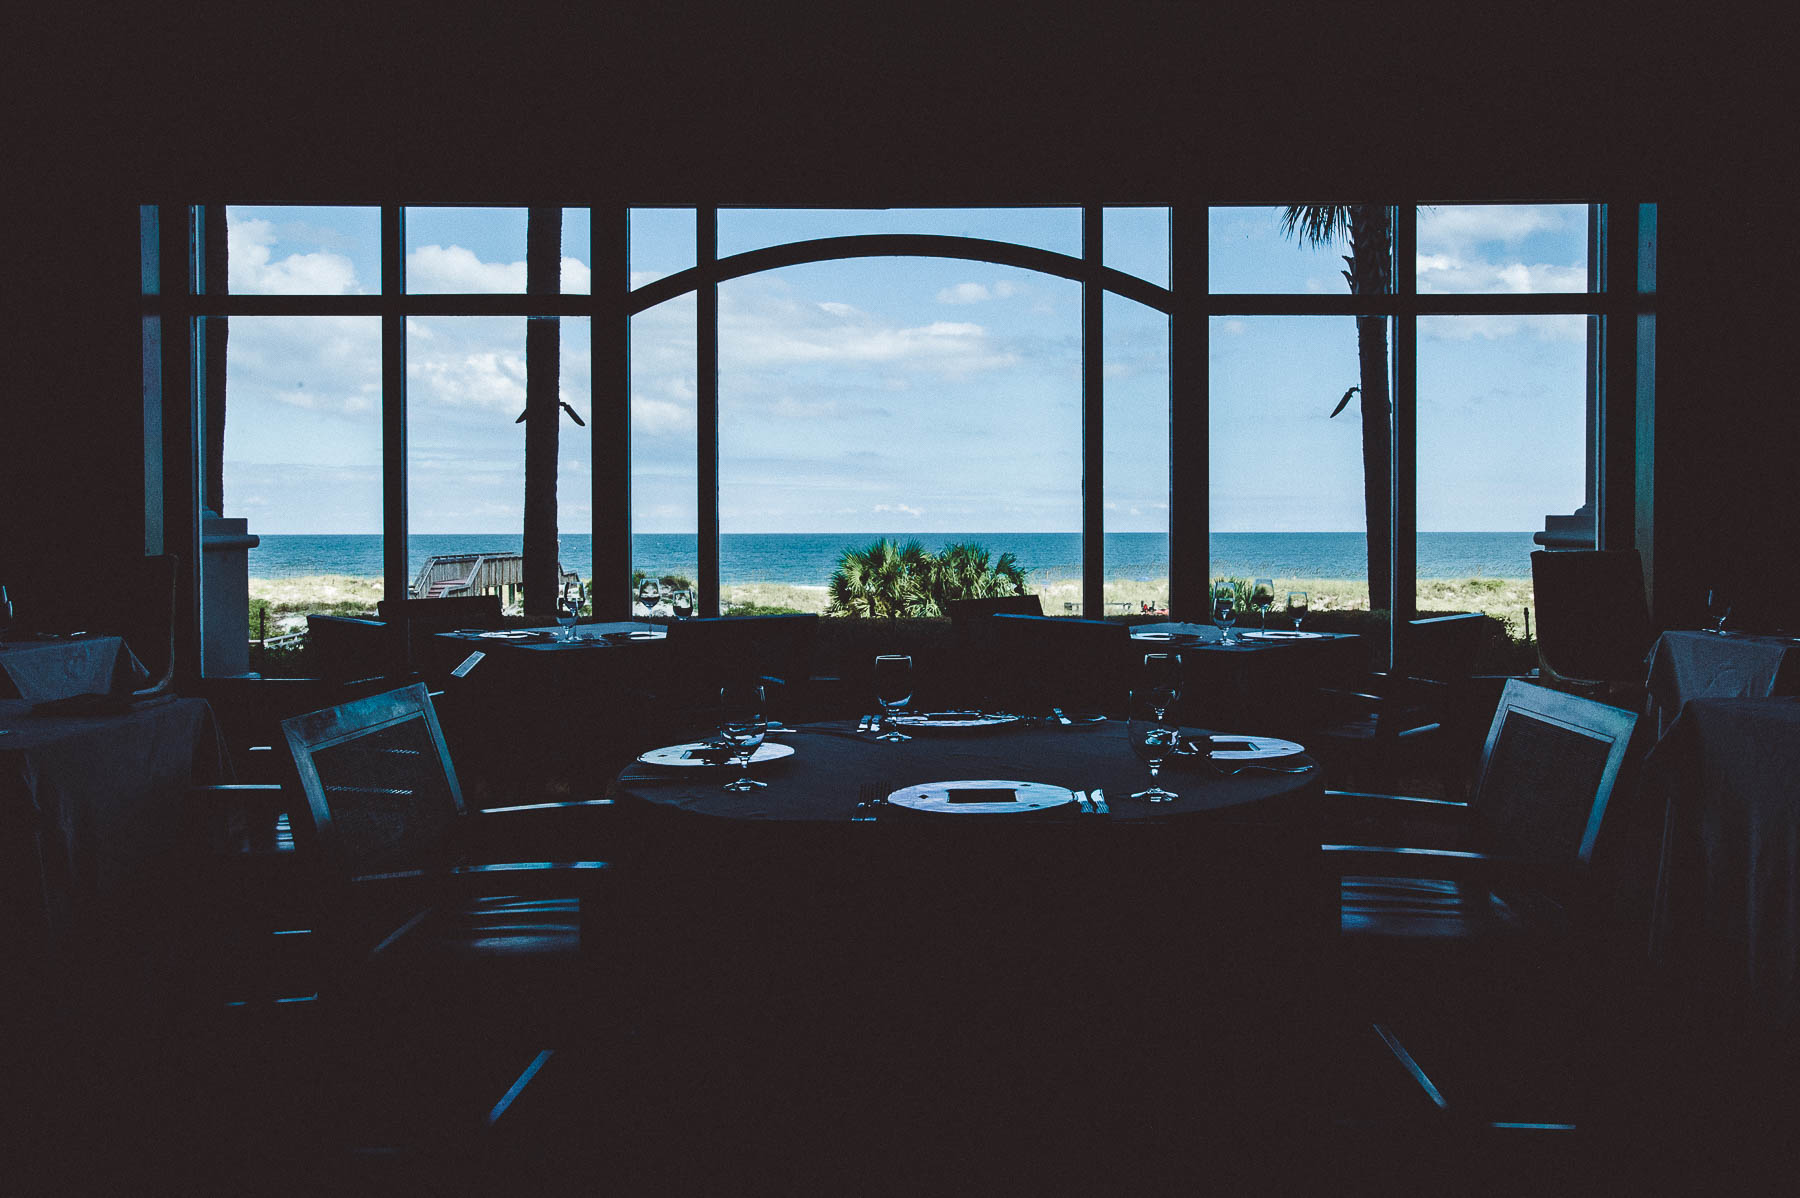 A view of the Altantic ocean from the dining room at Salt, Ritz-Carlton, Amelia Island.